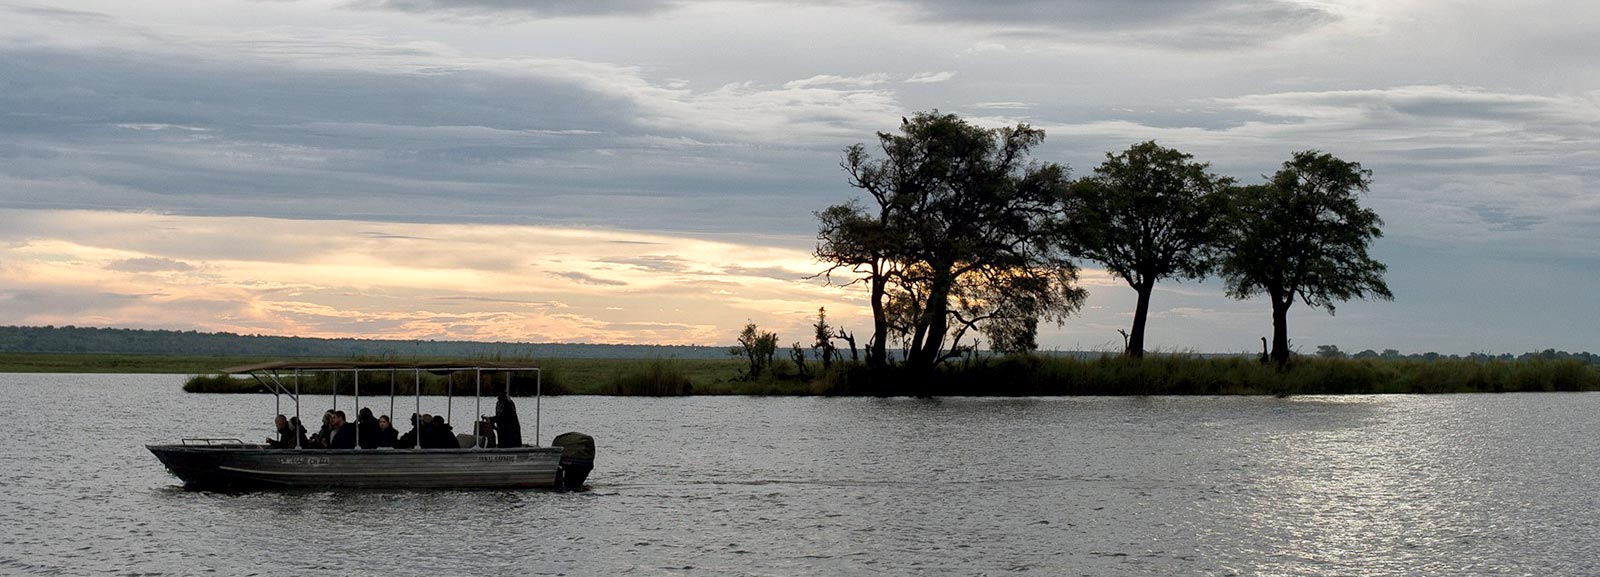 Sun Set Chobe River